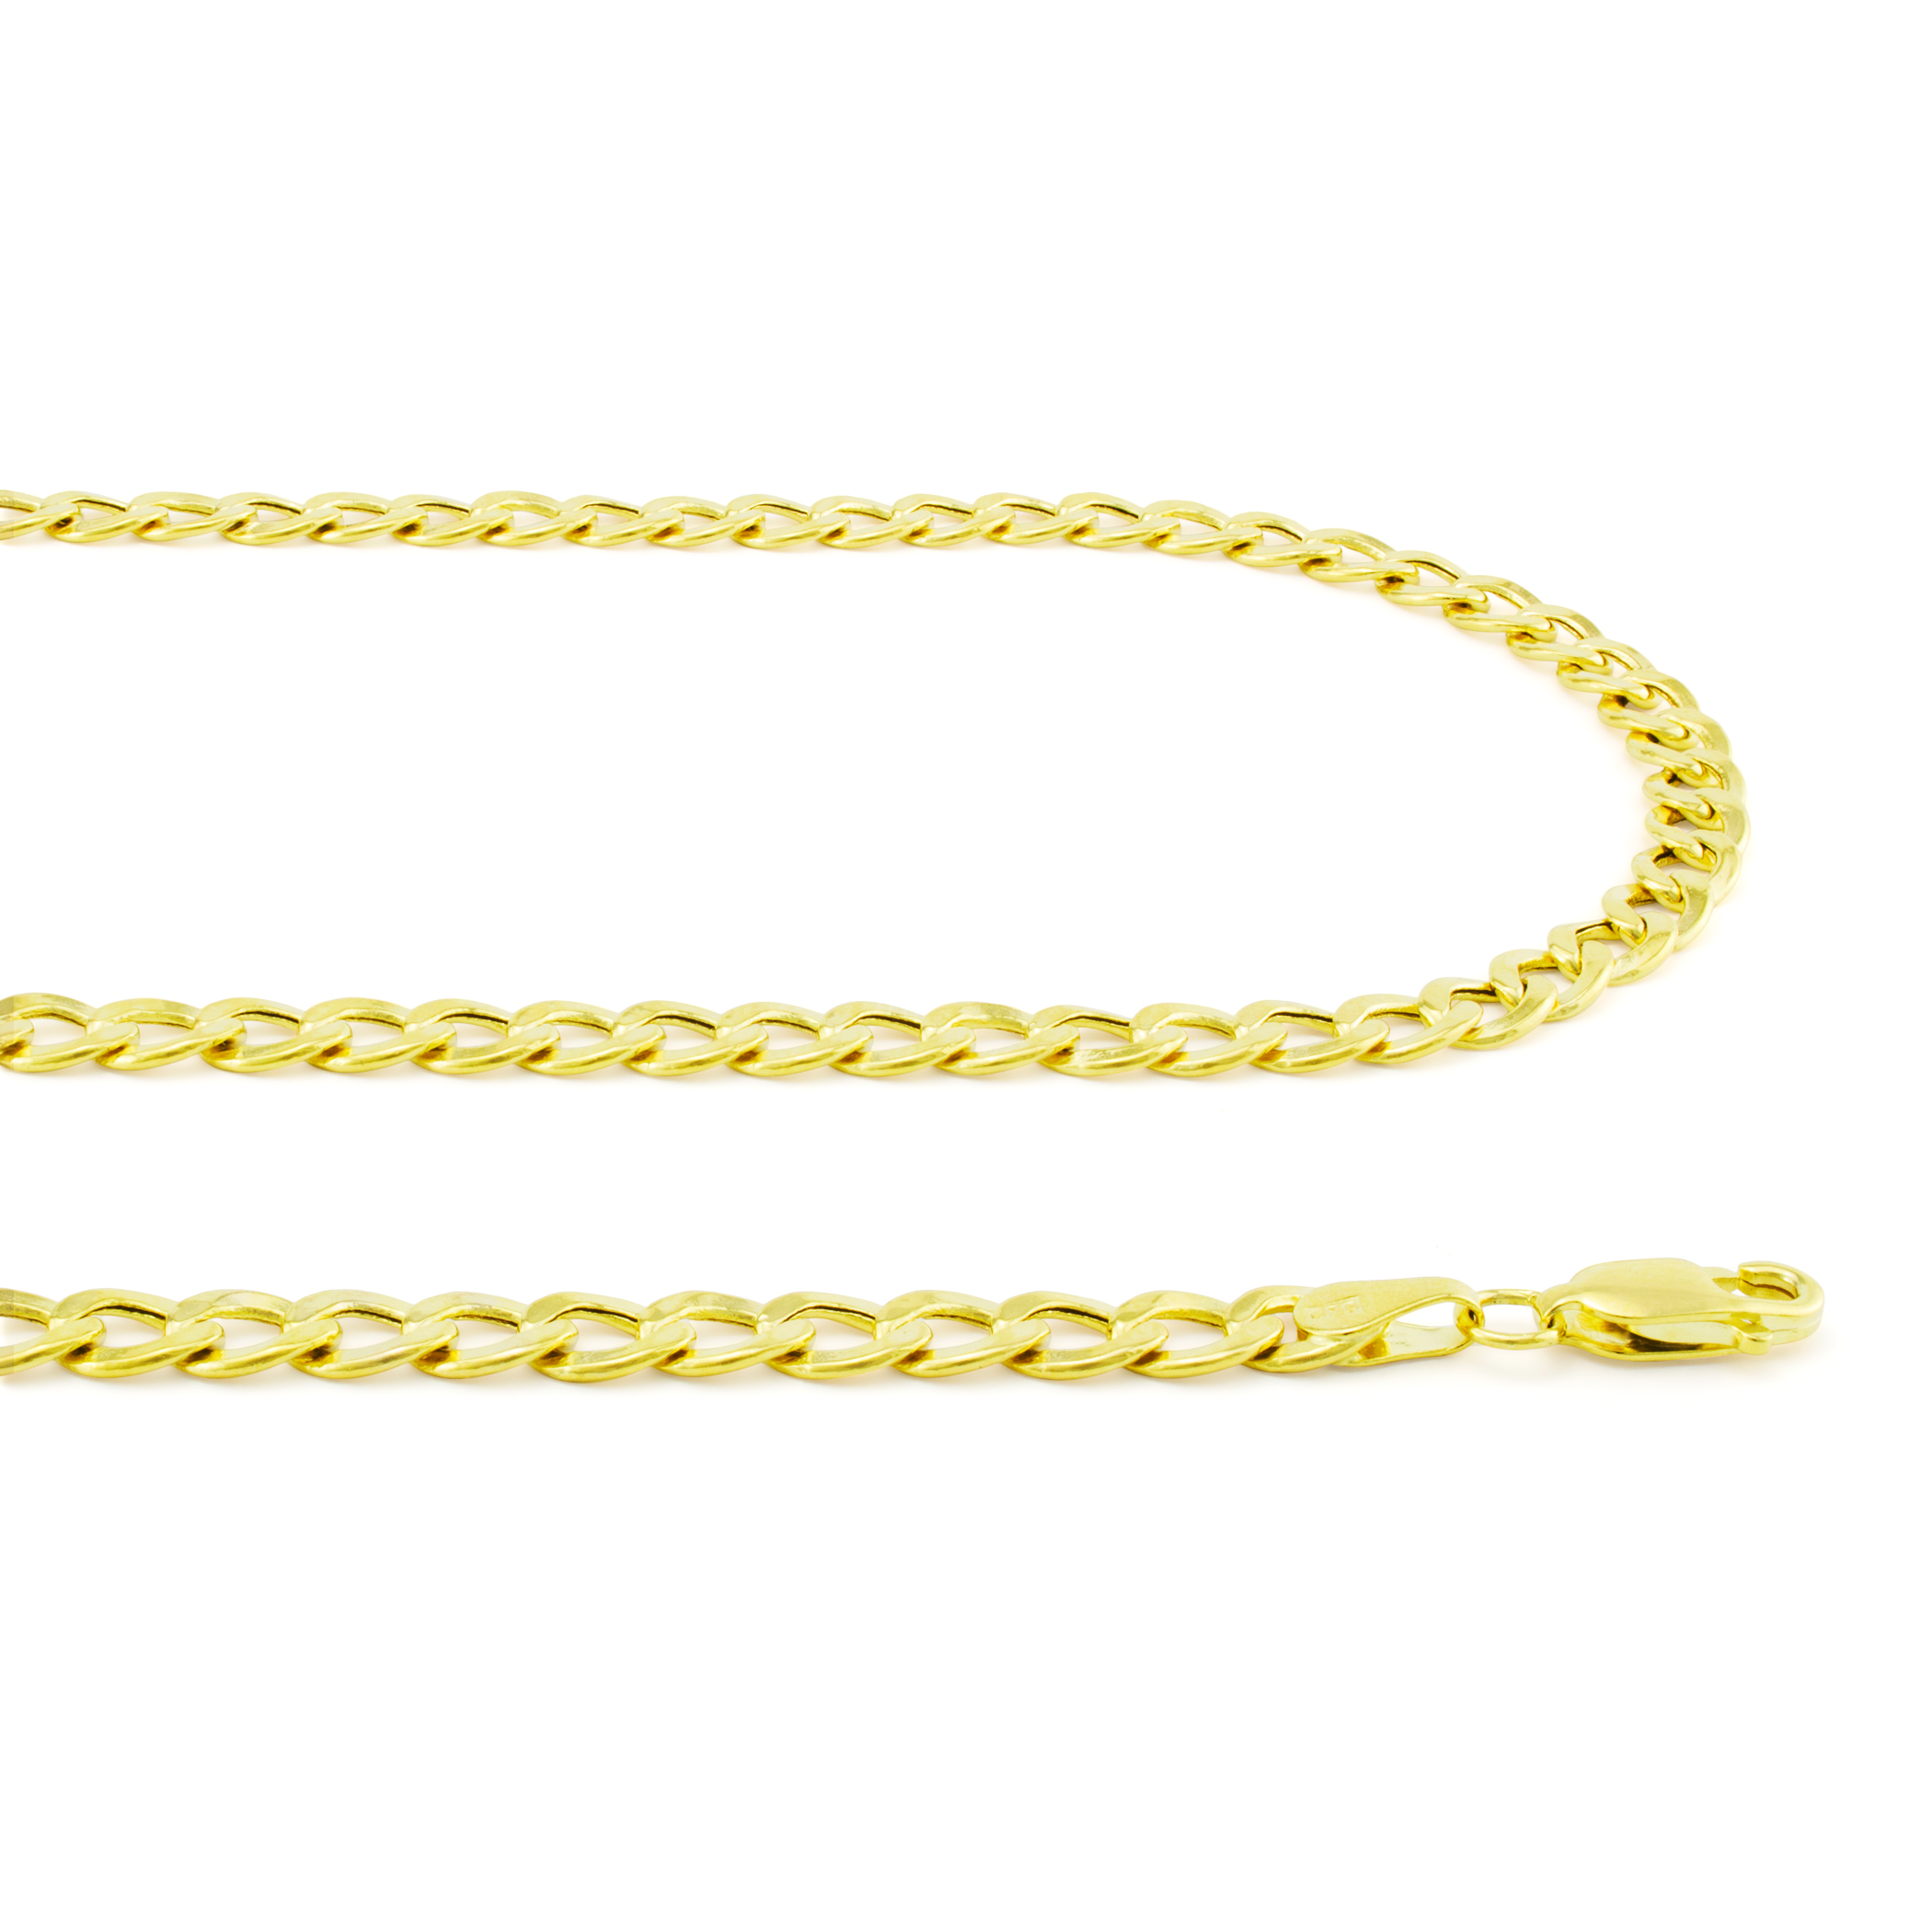 Real-14K-Yellow-Gold-4-5mm-Cuban-Curb-Chain-Link-Bracelet-Anklet-Chain-7-034-8-034-9-034 thumbnail 22